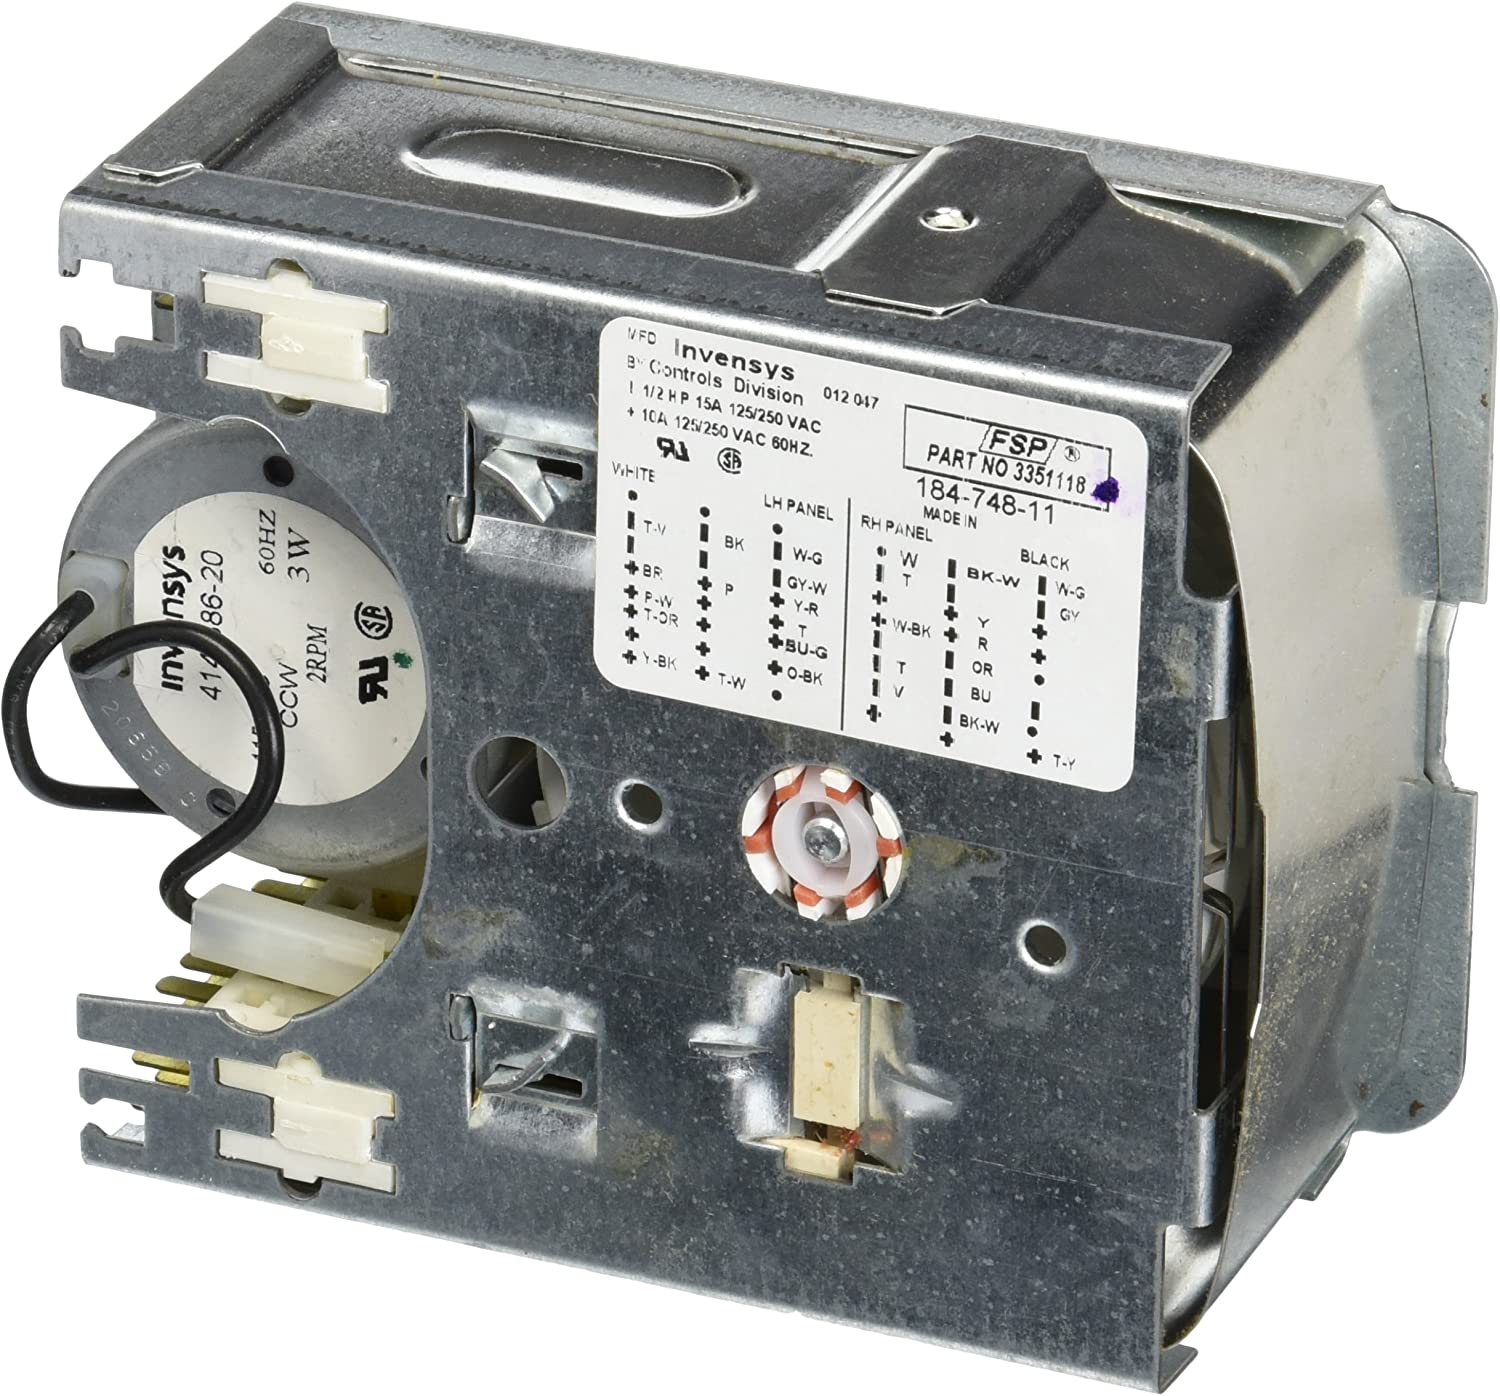 Whirlpool Part Number 3351118: TIMER